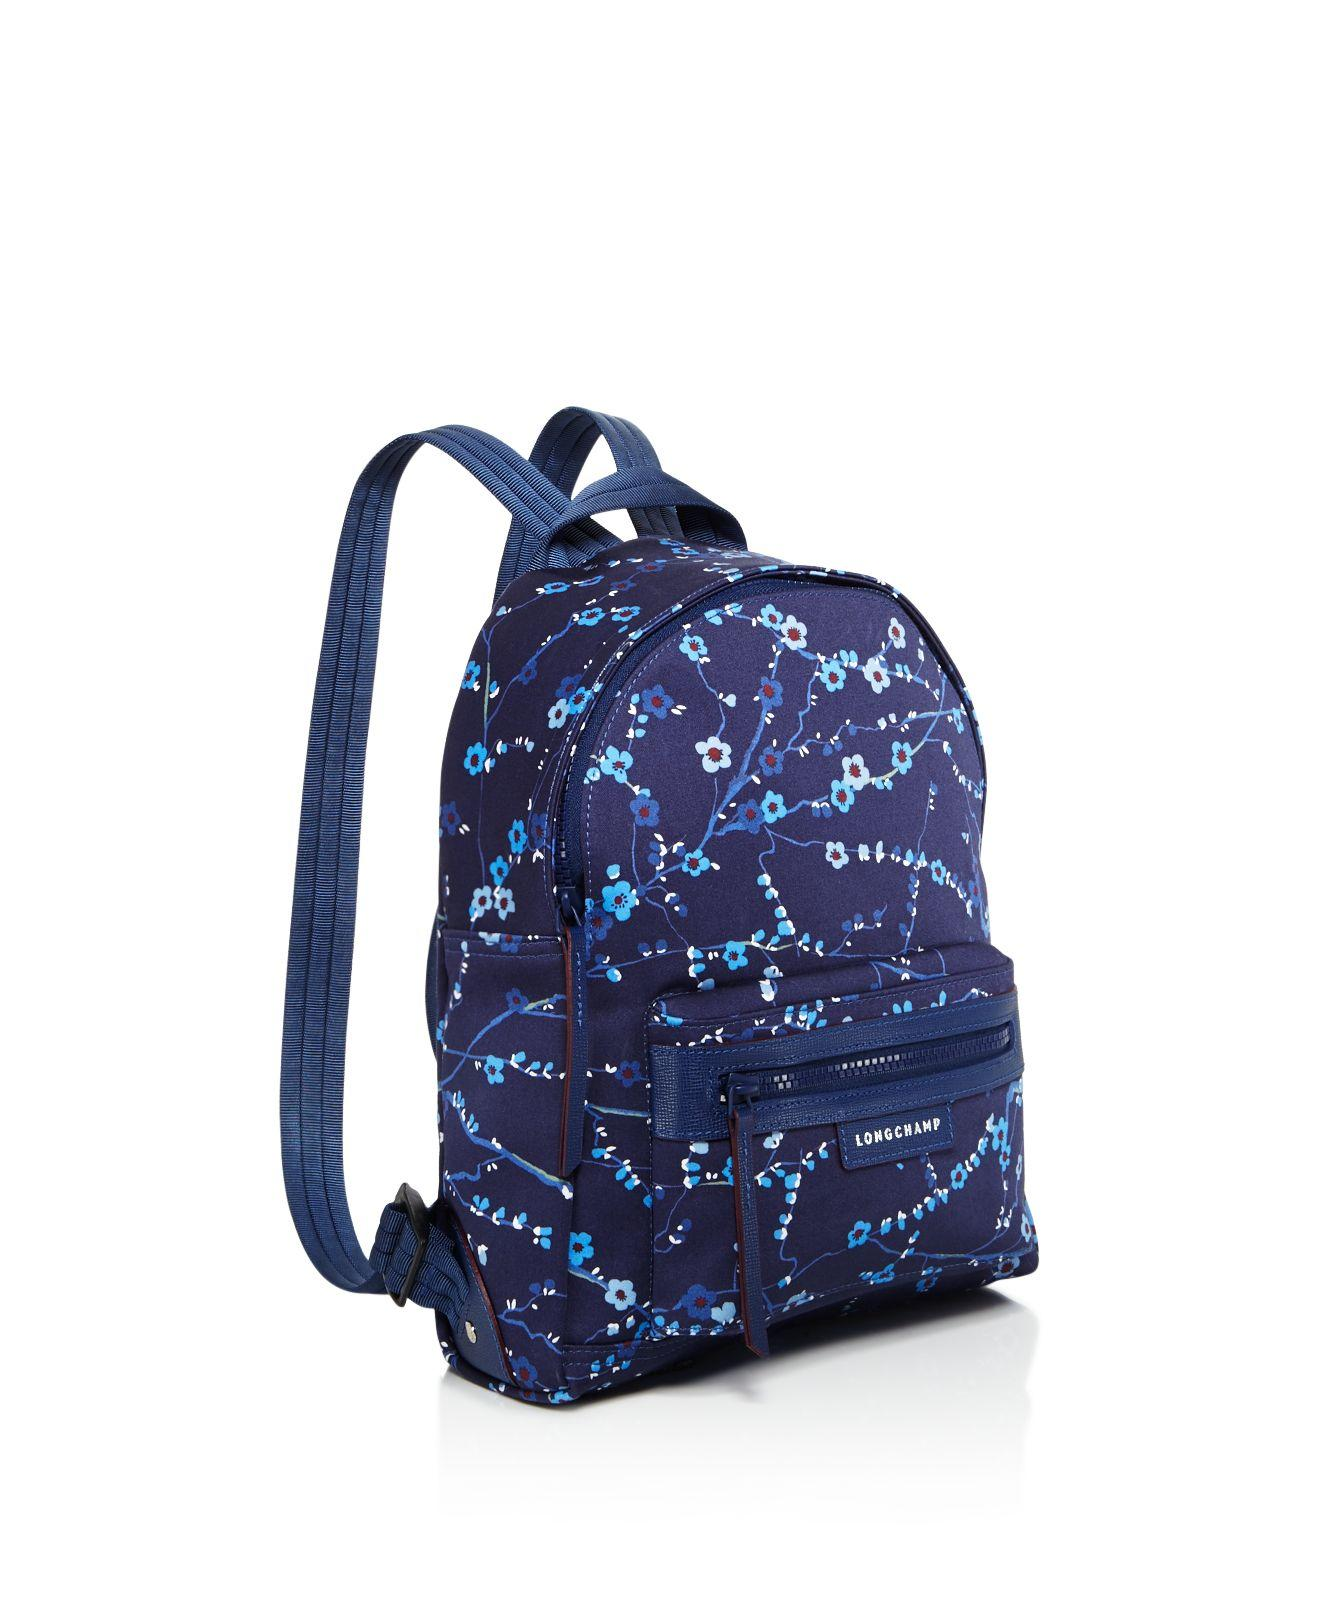 Lyst - Longchamp Le Pliage Neo Sakura Small Nylon Backpack in Blue 3ca77d655d92f